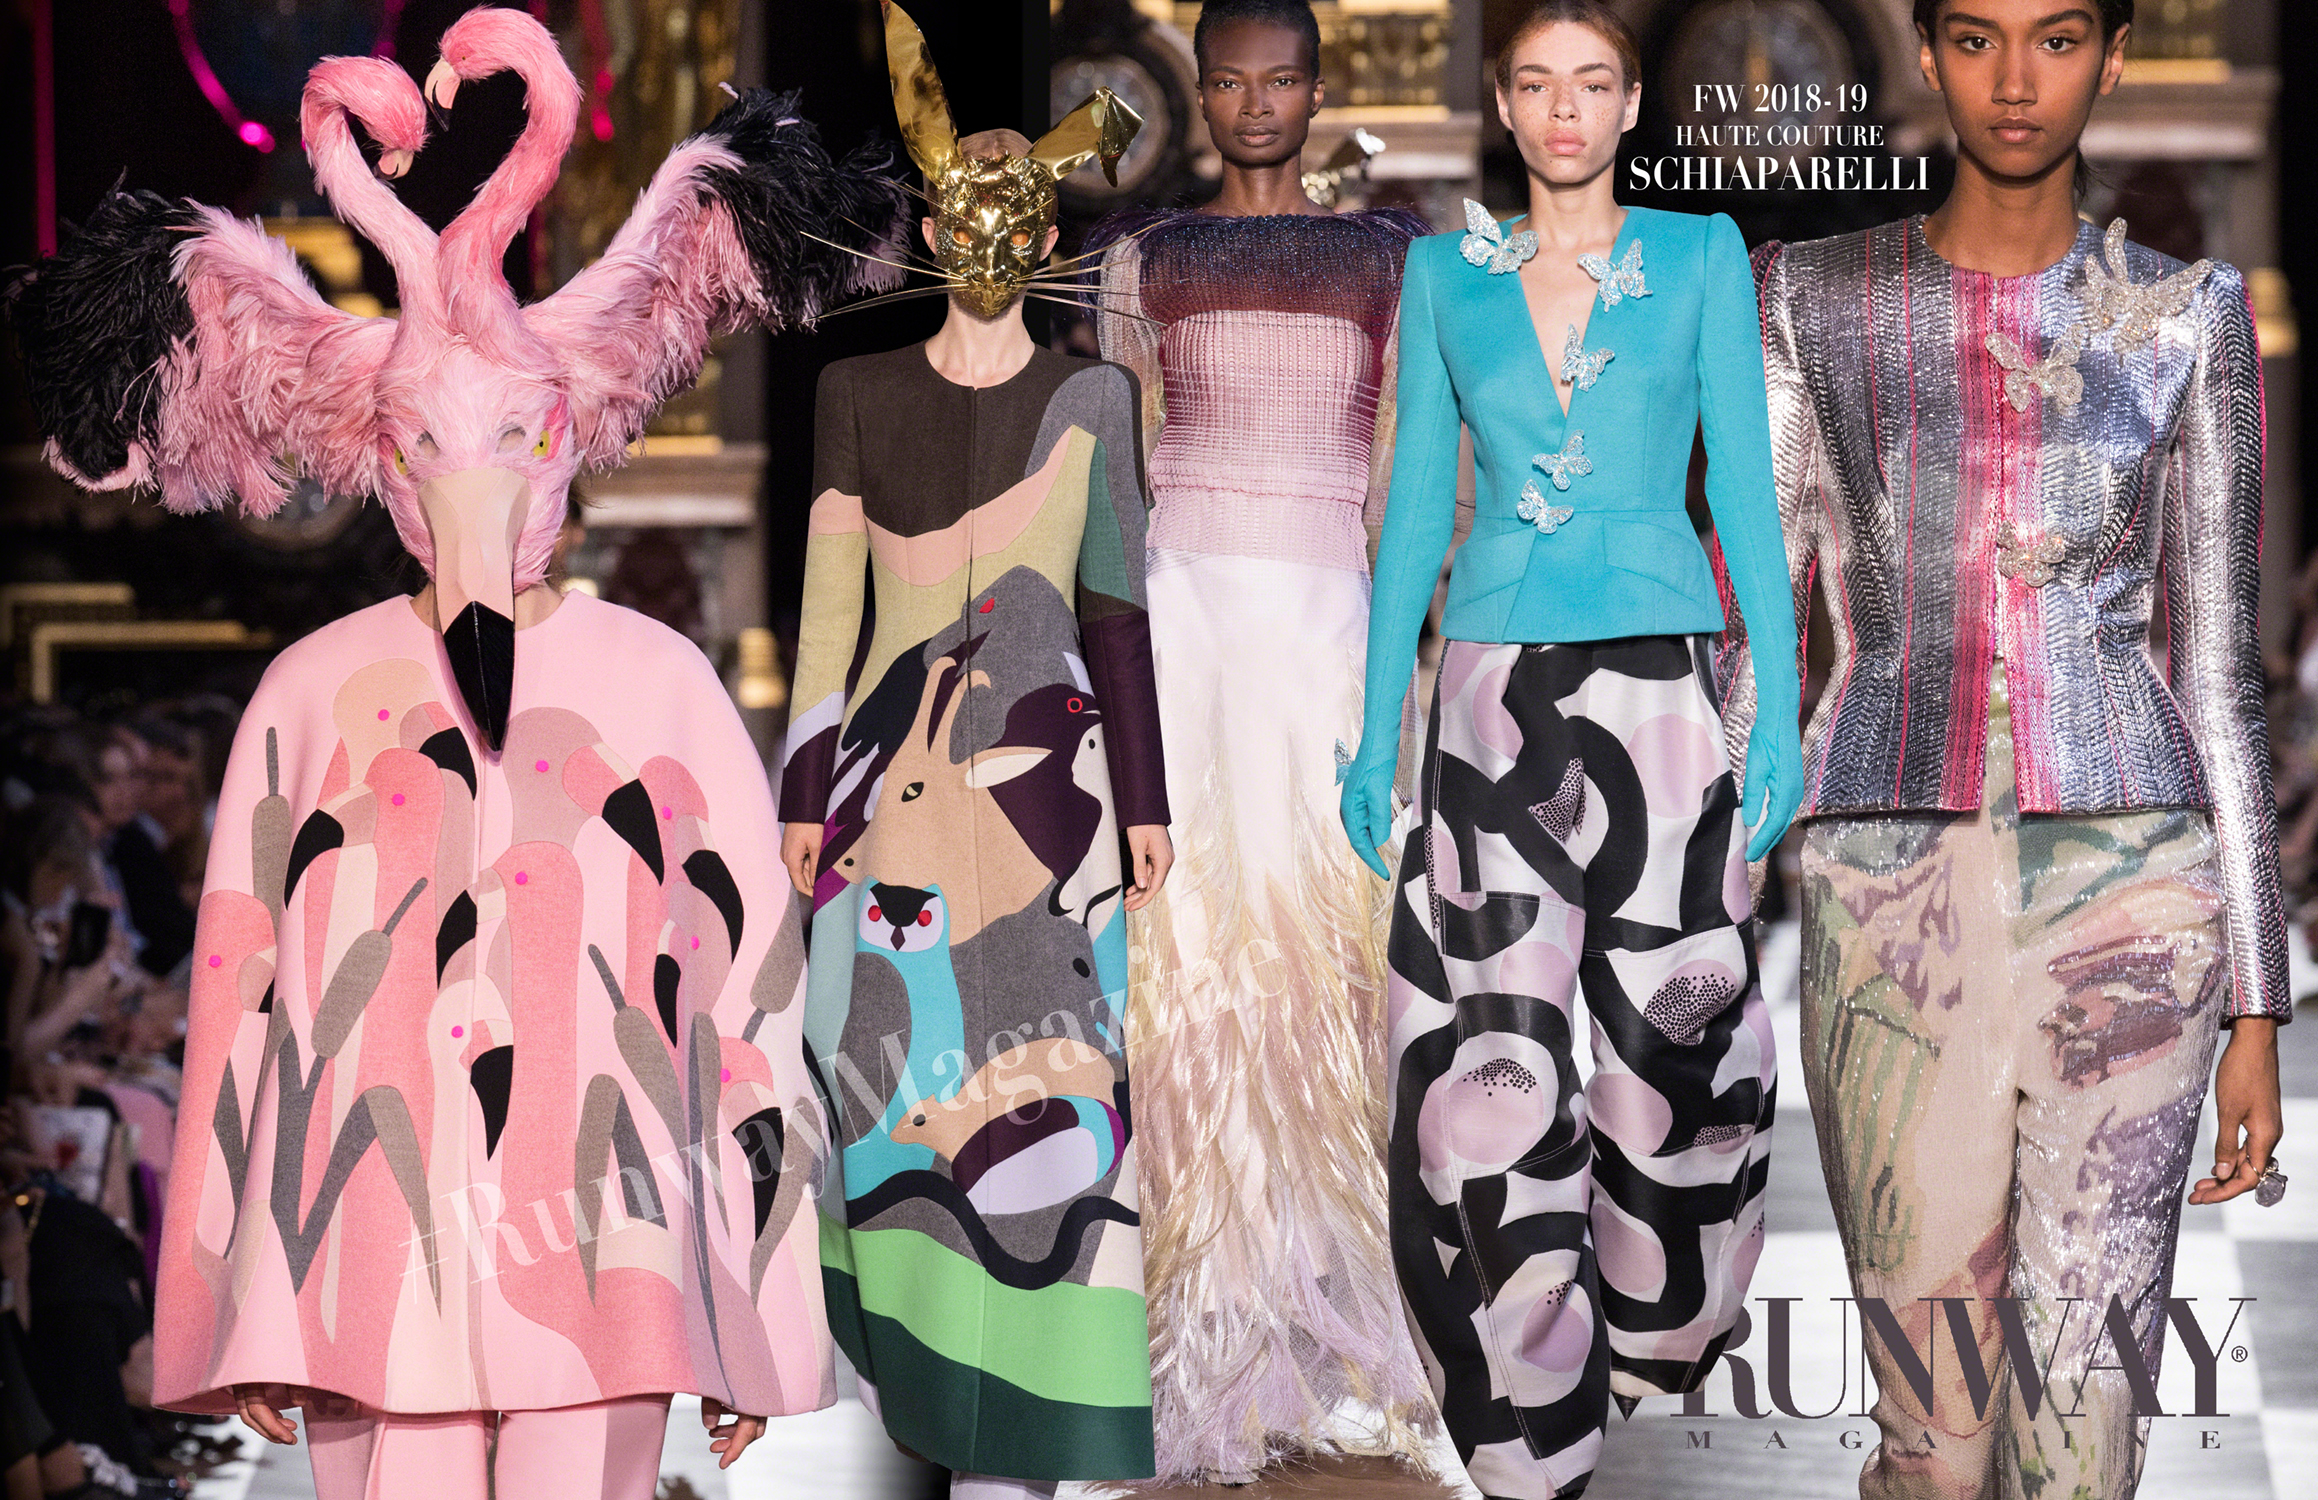 SCHIAPARELLI Haute Couture Fall Winter 2018-2019 Runway Magazine